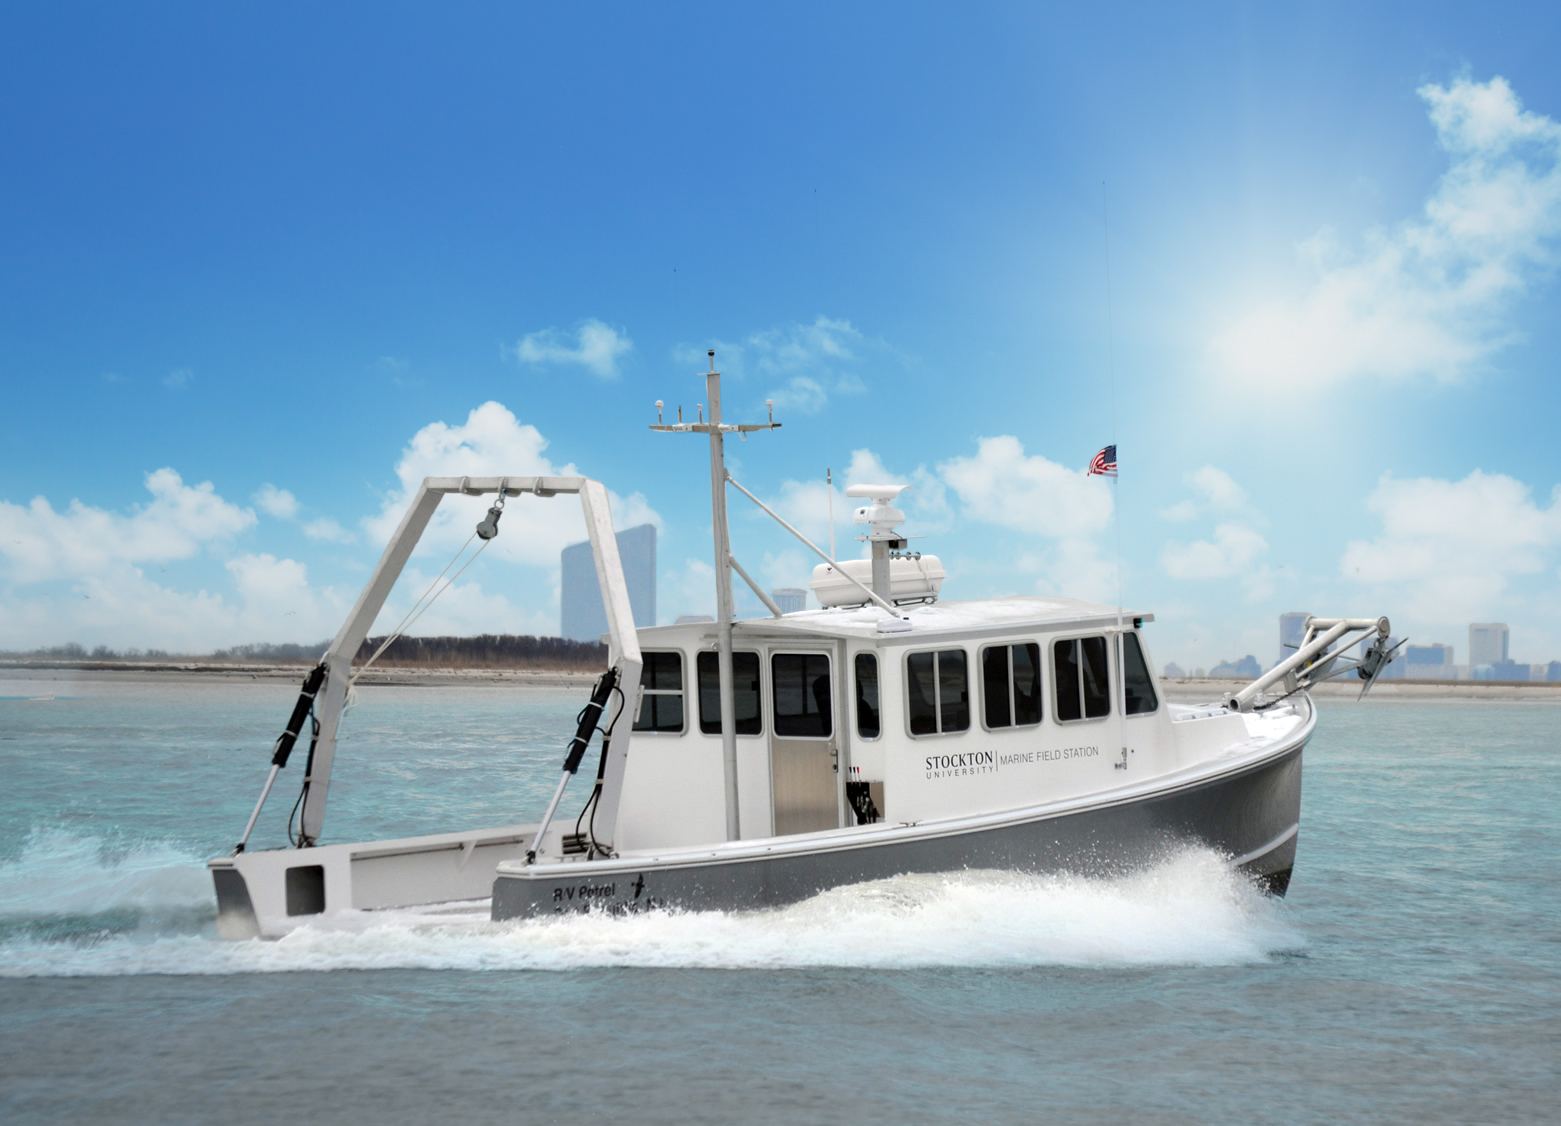 Stockton University School of Natural Sciences and Mathematics Research Vessel The Petrel